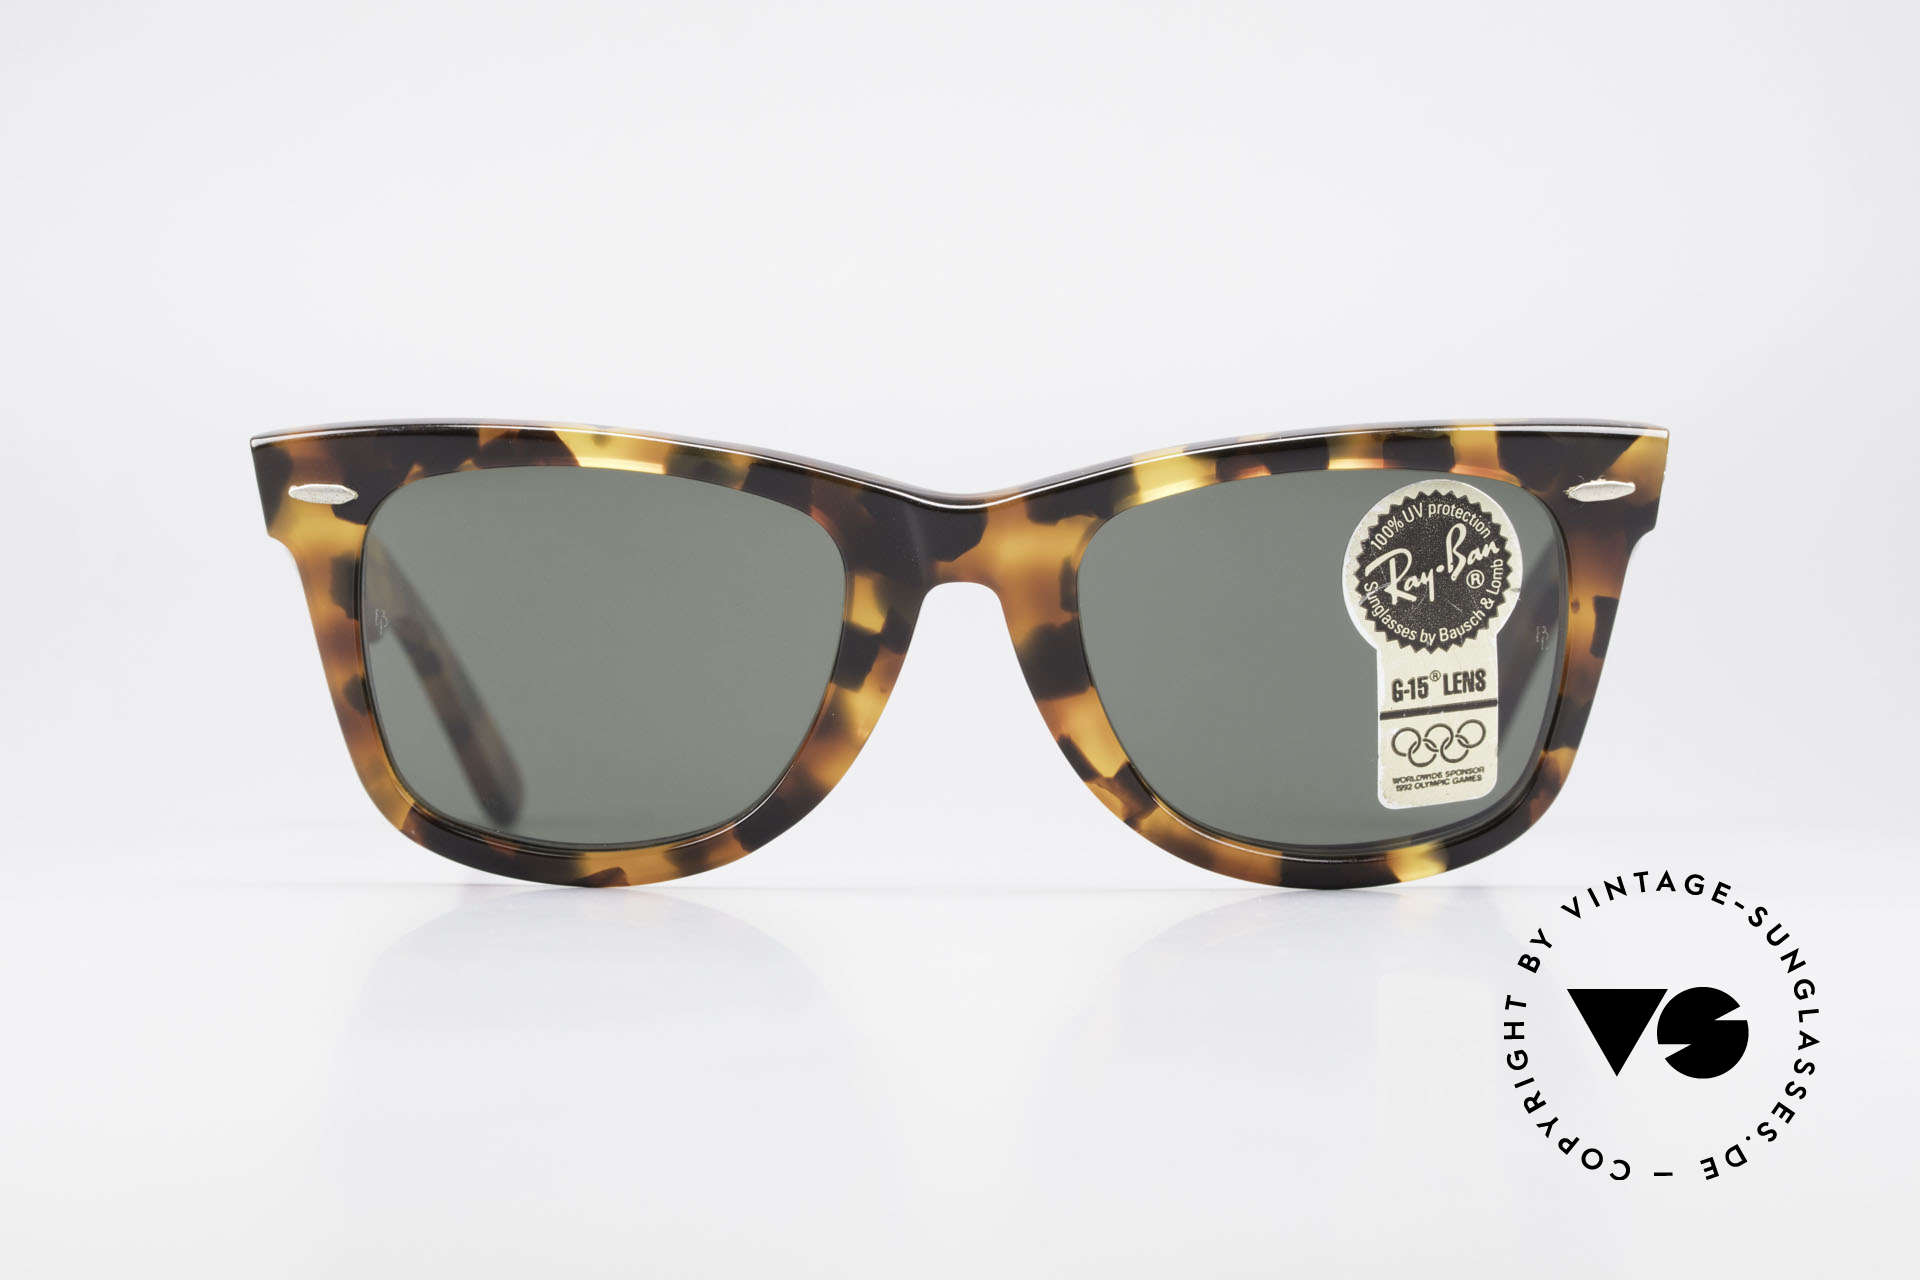 "Ray Ban Wayfarer I Limited Edition USA Original, worn by Don Johnson in ""Miami Vice"" in the 1980's, Made for Men and Women"